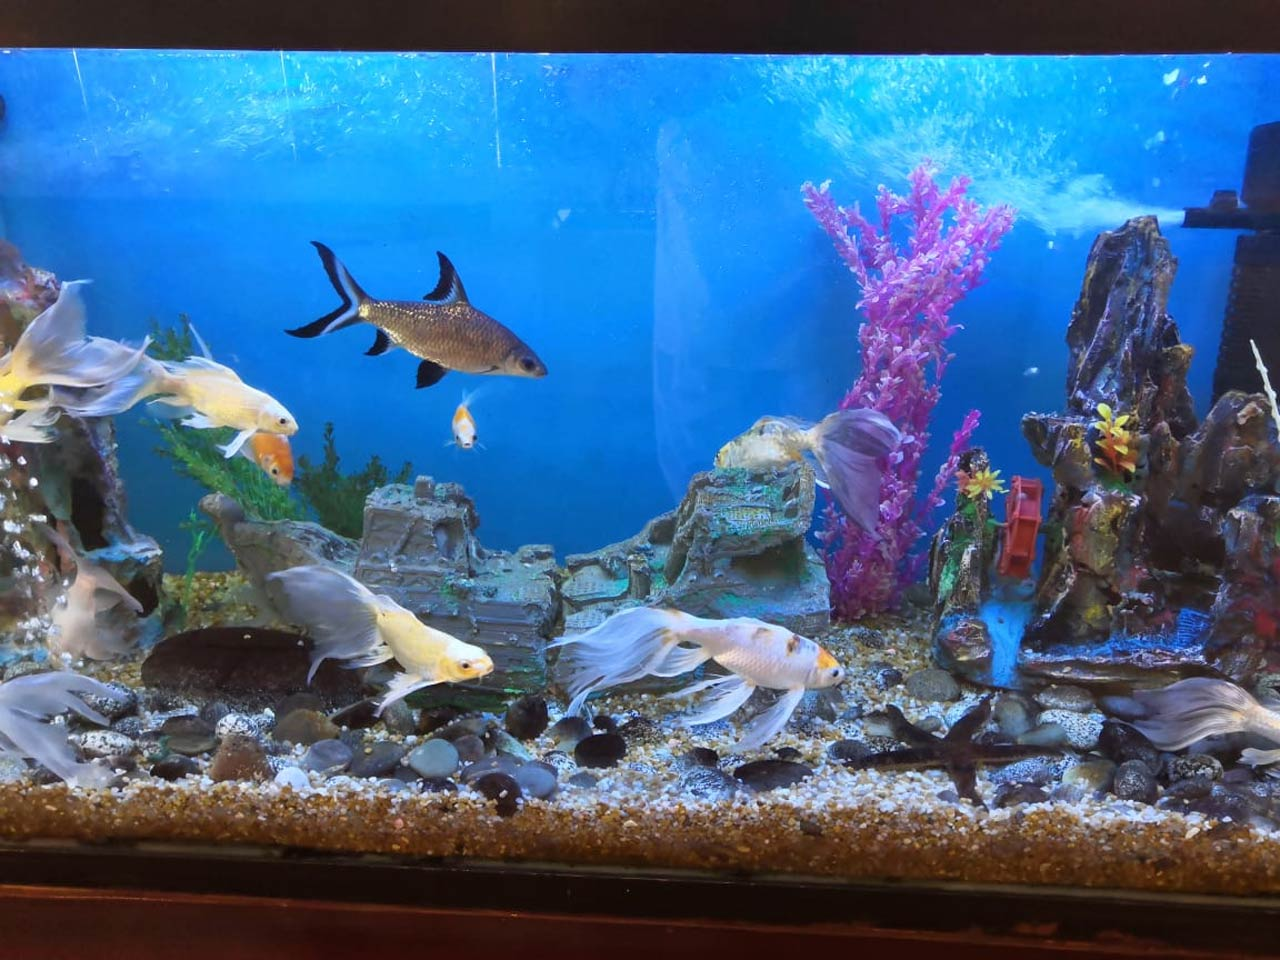 Aquarium at the Hotel Mehran Lobby